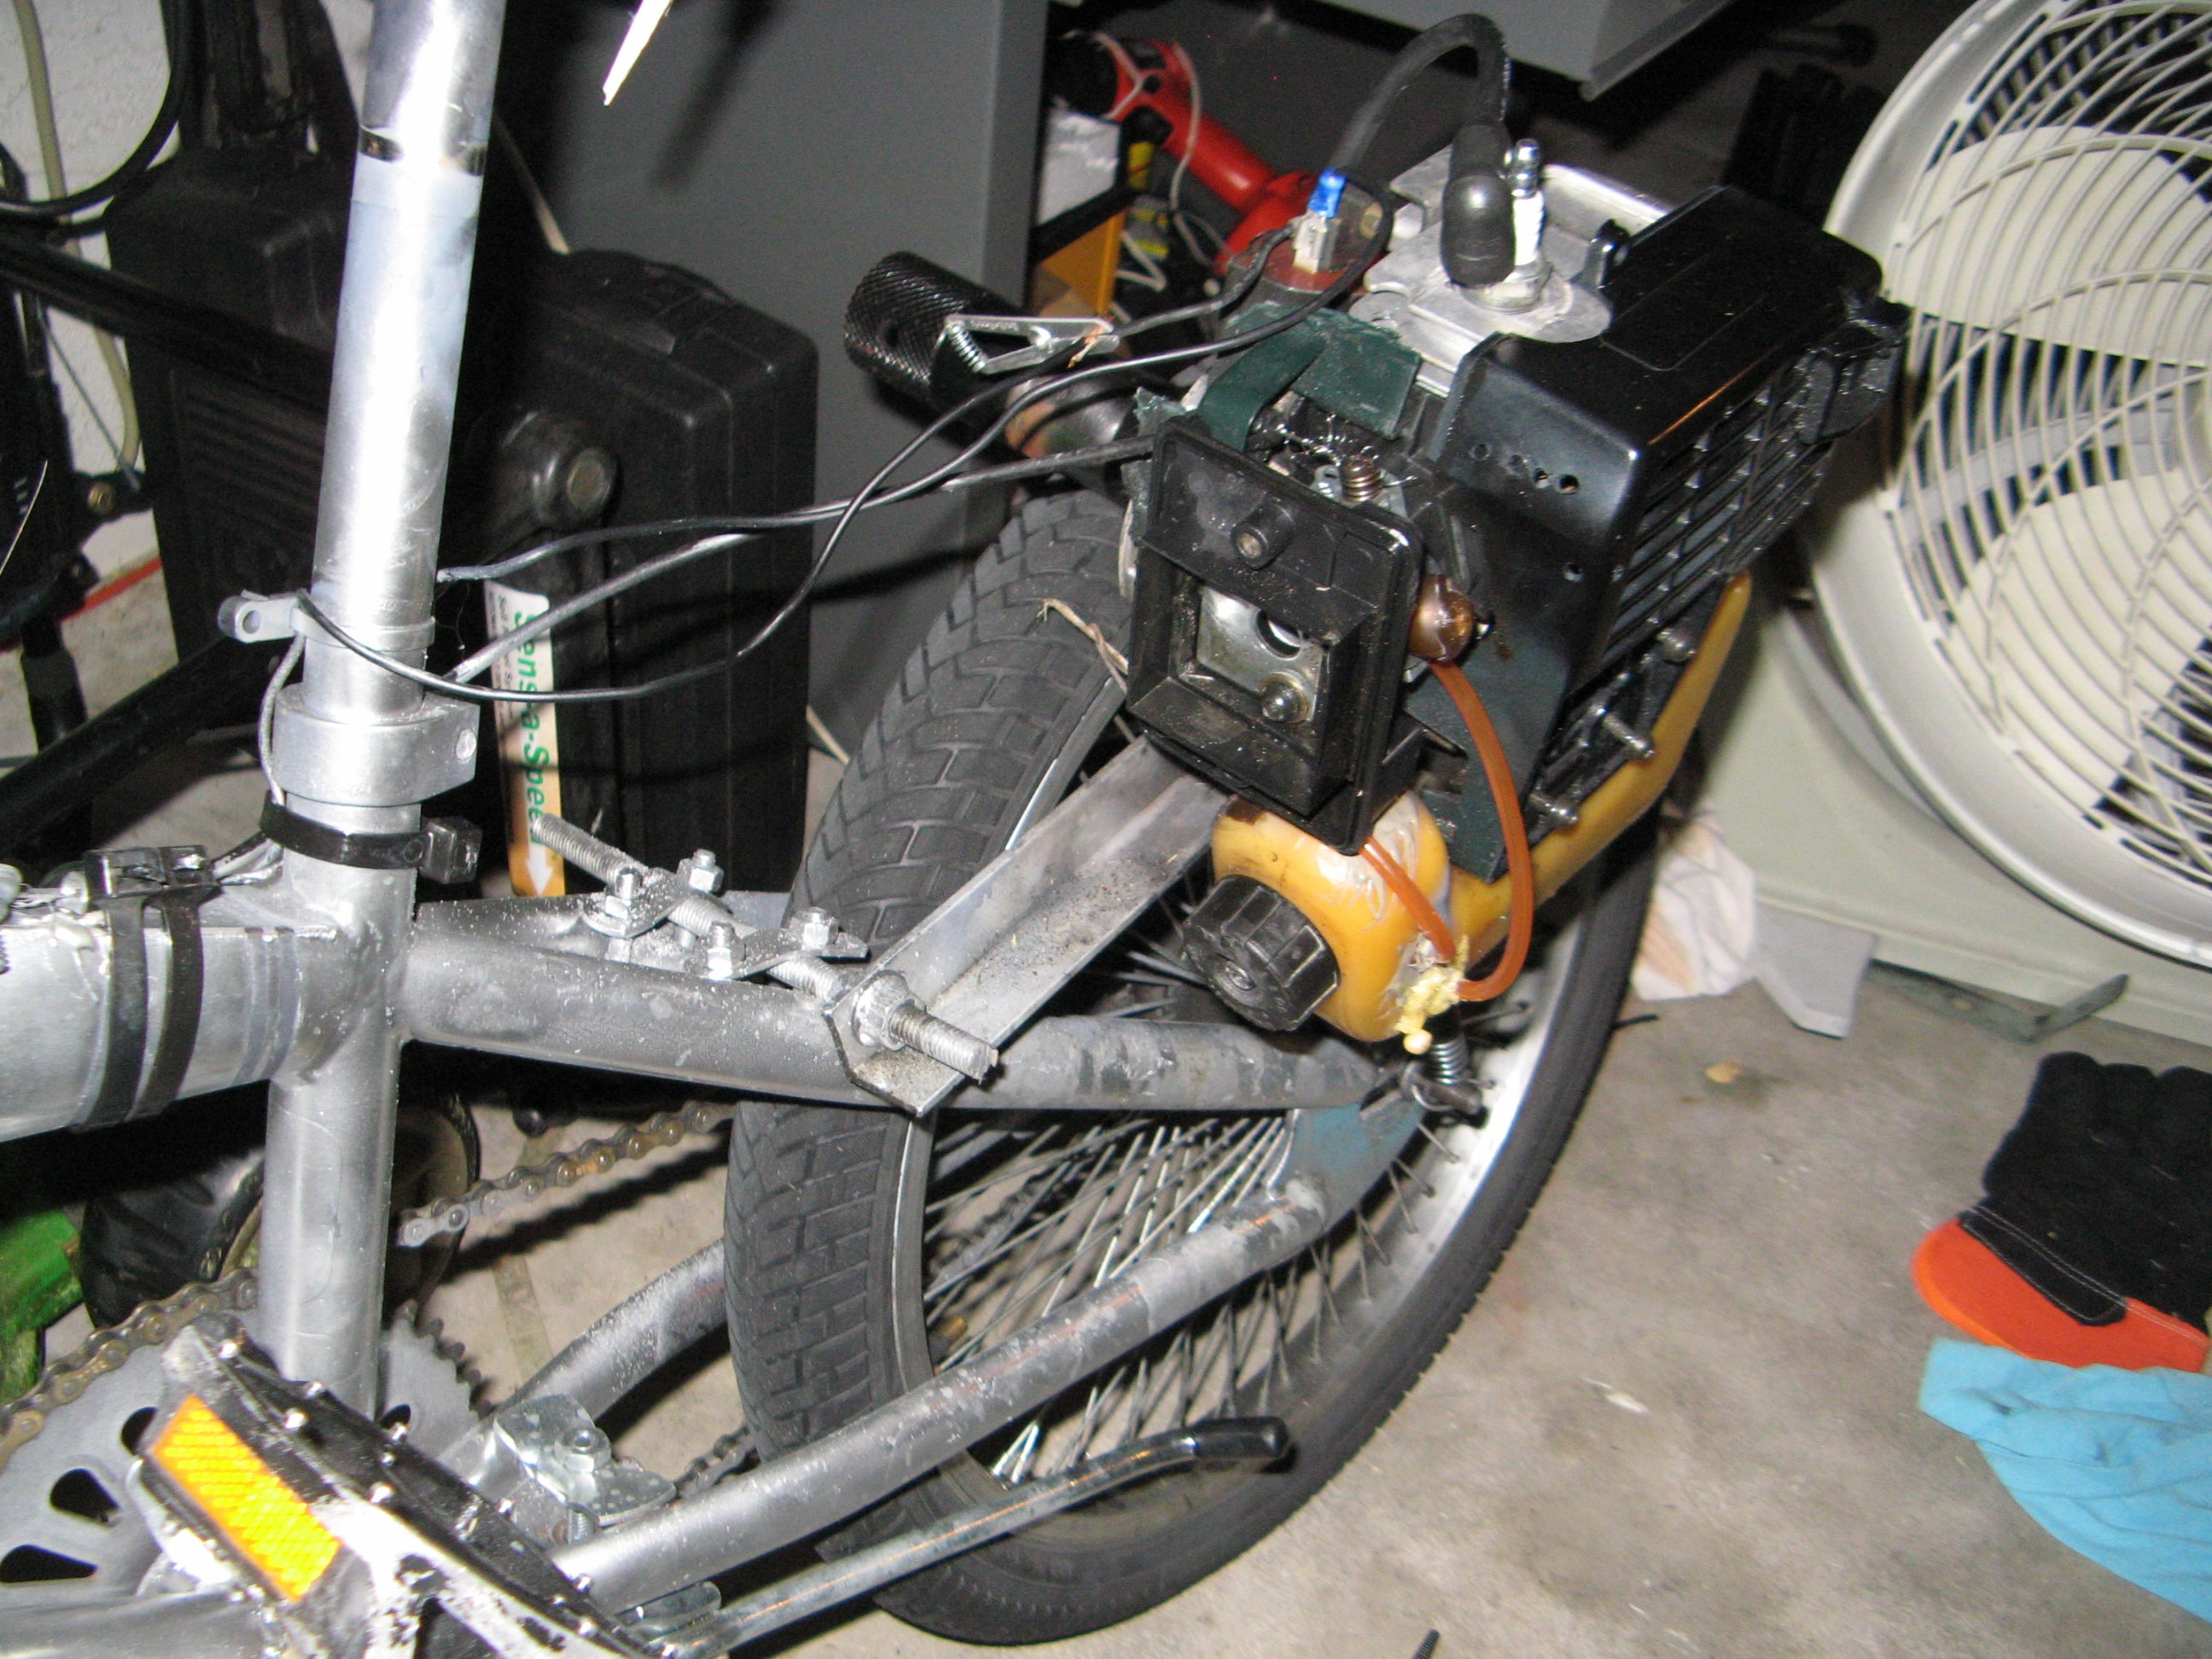 How To Make The Cheapest Motorbike Ever 6 Steps Instructables